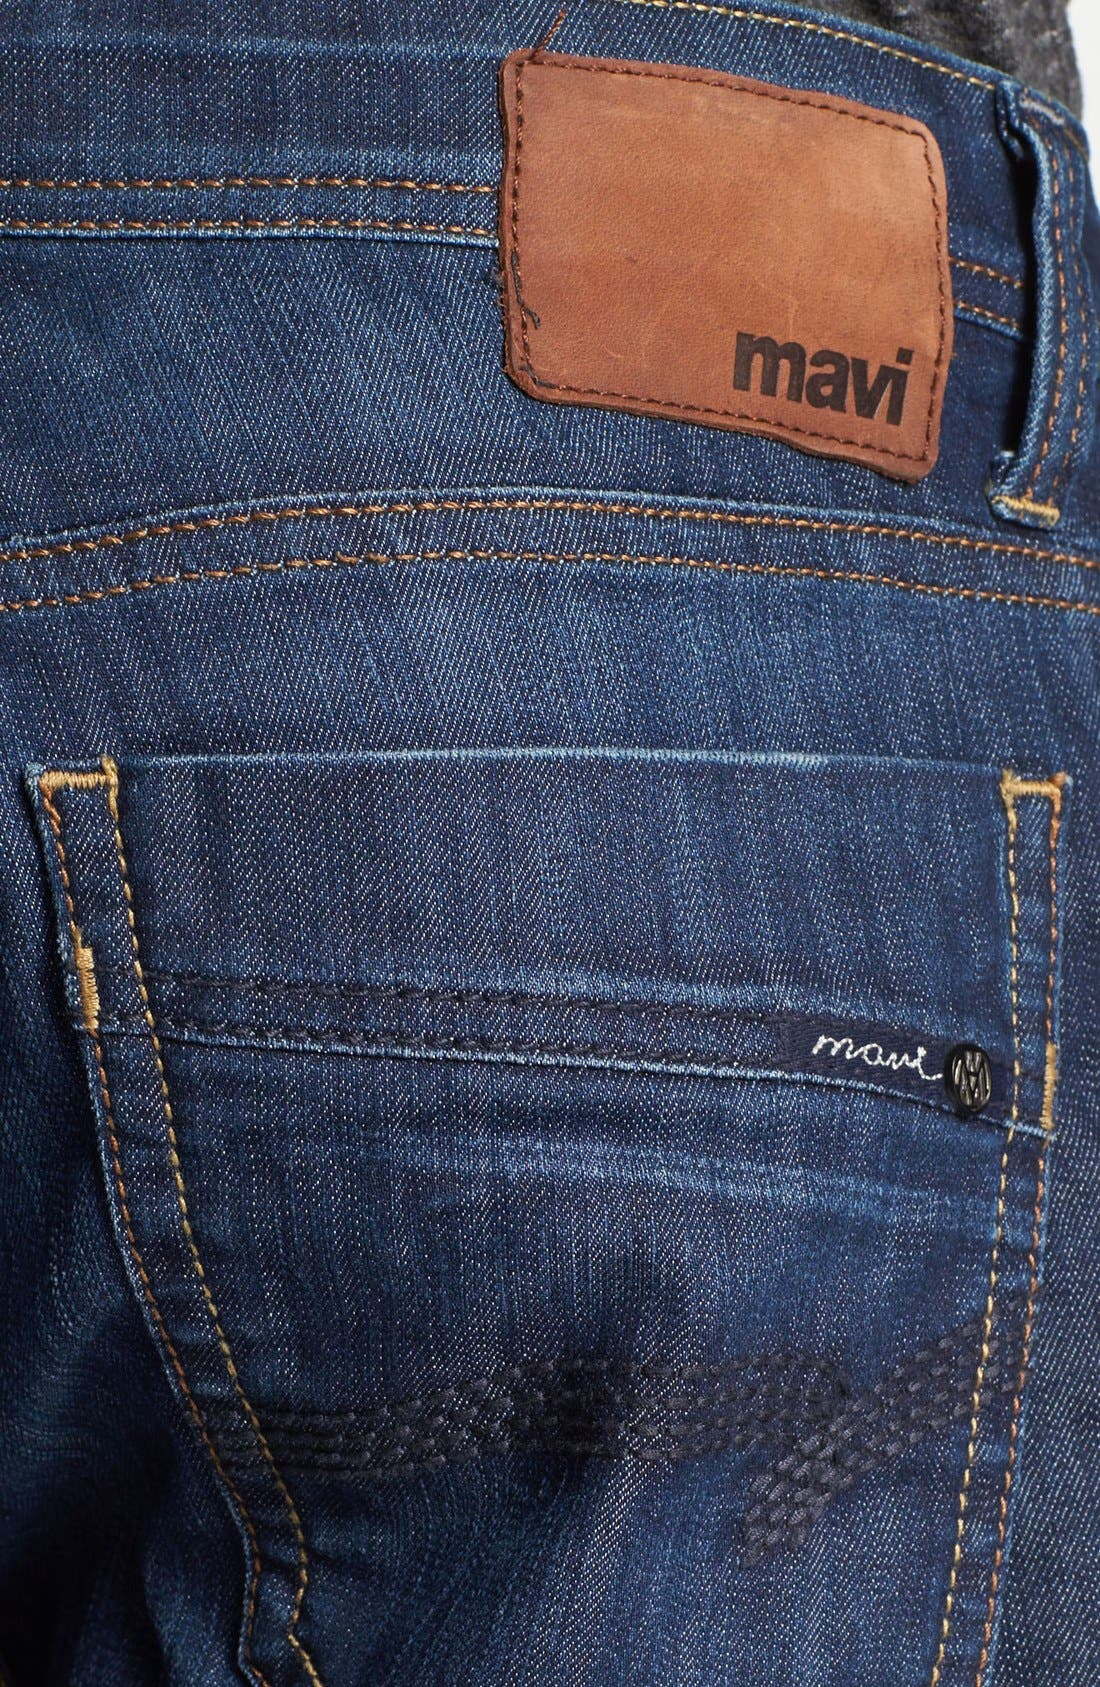 Zach Straight Leg Jeans,                             Alternate thumbnail 8, color,                             DARK MAUI